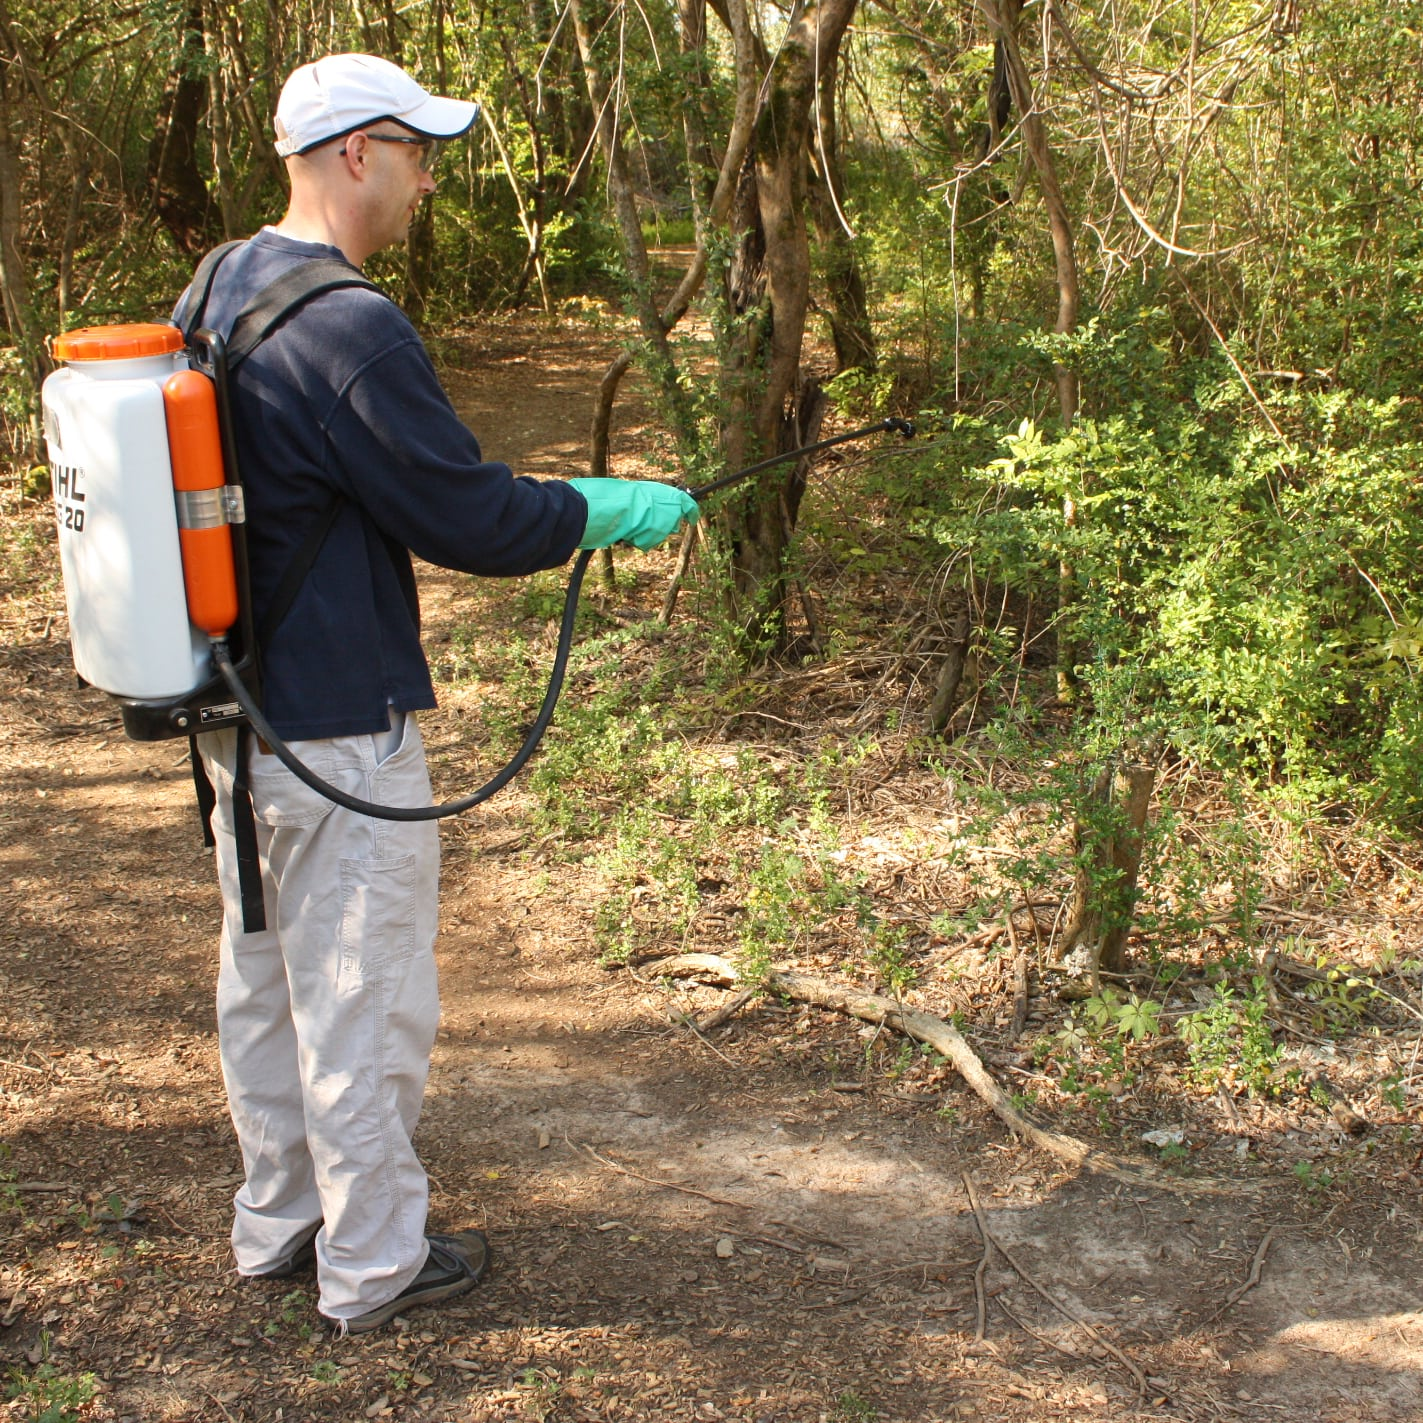 man with backpack sprayer spraying invasive